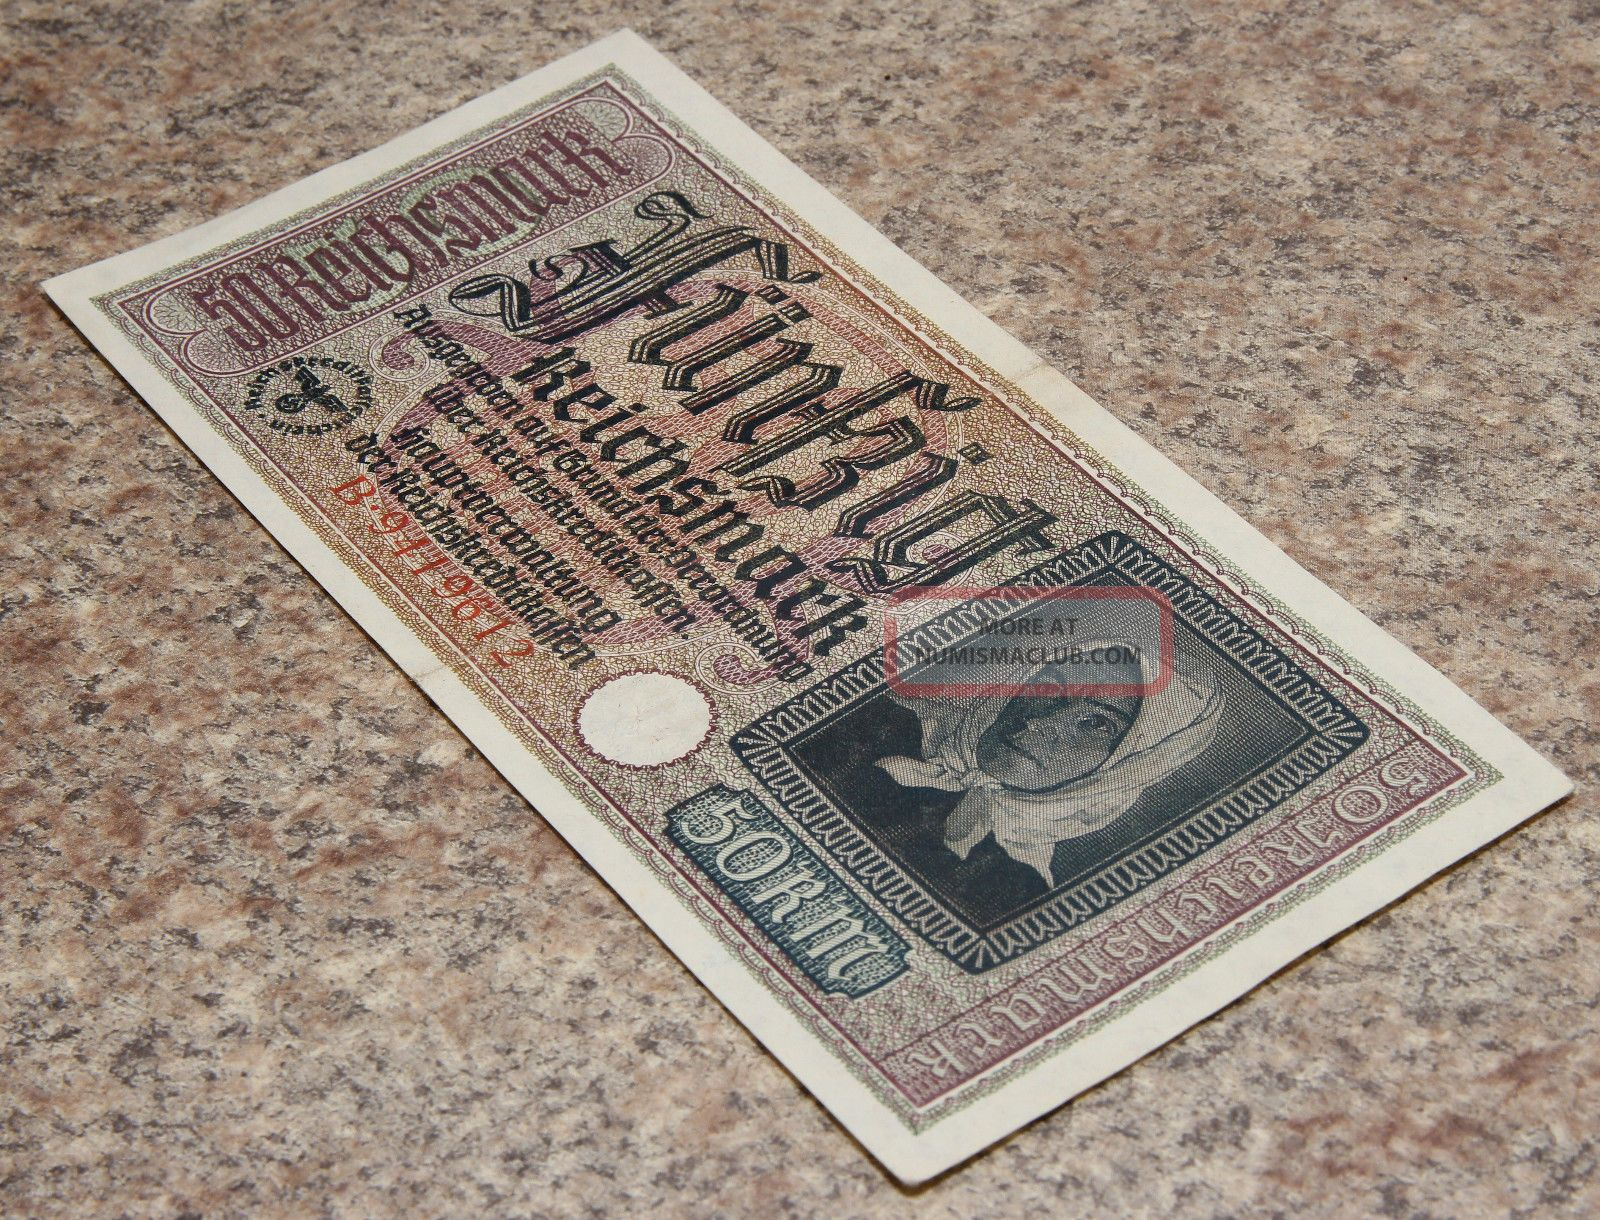 50 Reichsmark Wwii Nazi Germany Vintage Paper Money 1 Note Rare Europe photo